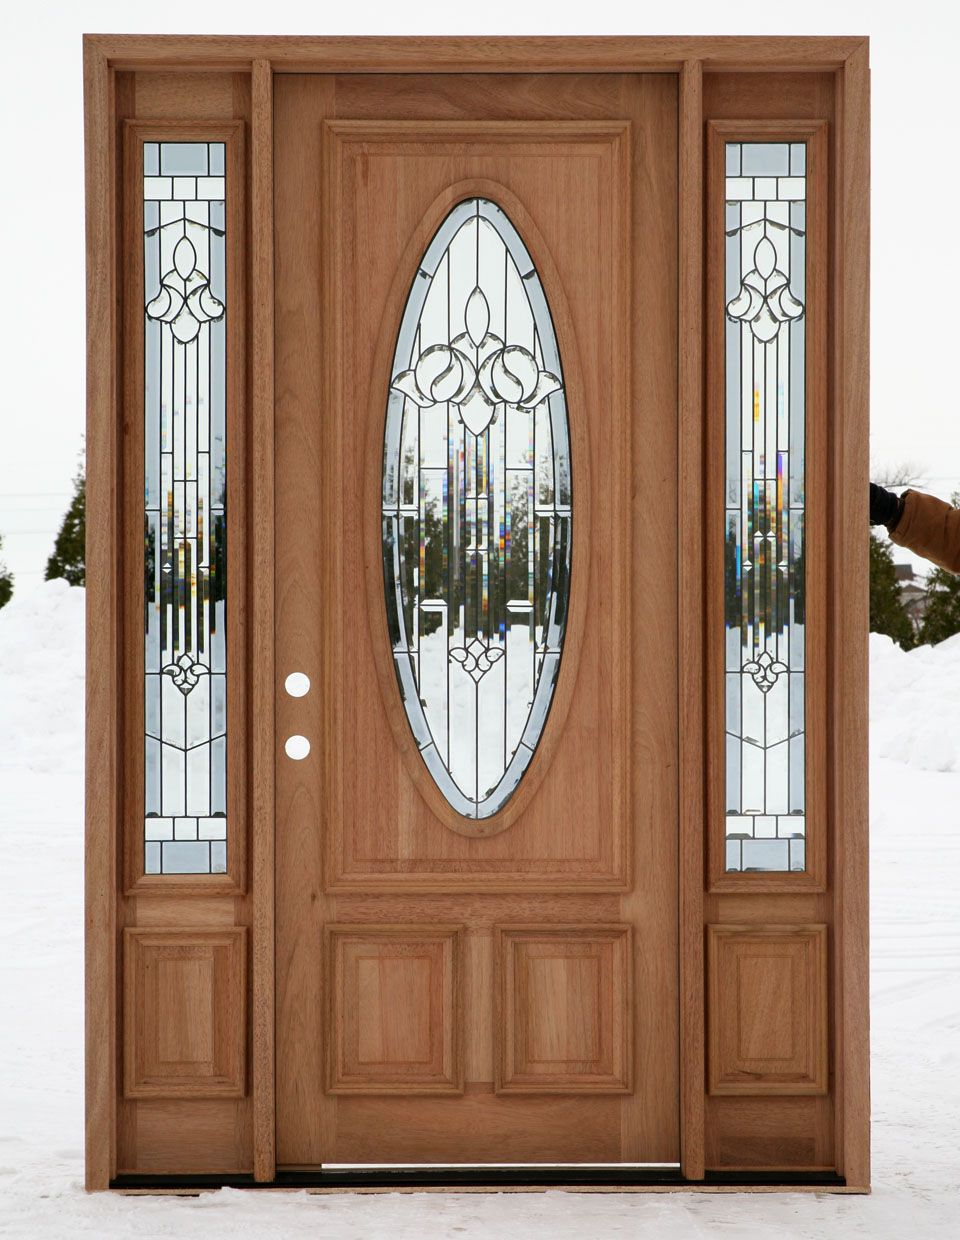 Front entrance doors exterior doors entry doors wood for Exterior front entry wood doors with glass